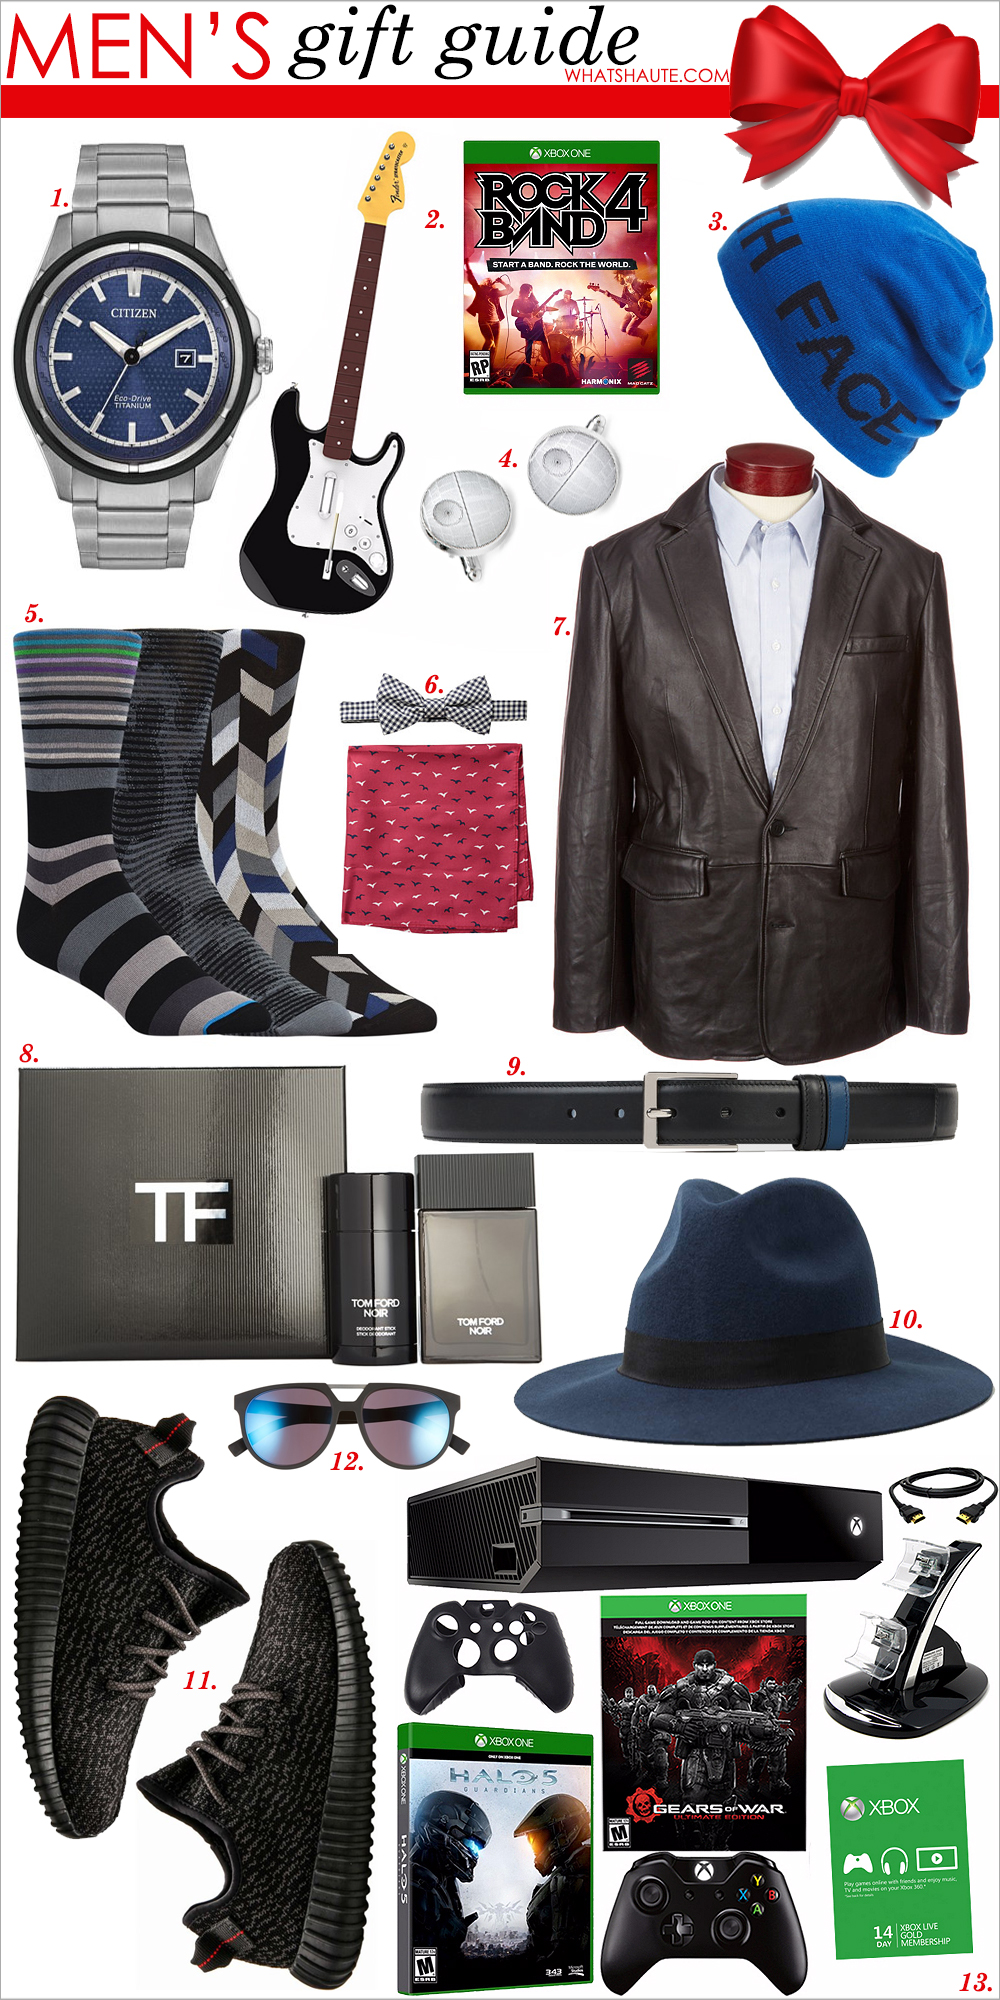 Holiday 2015: Gifts For Him - Men's gift guide, Citizen Eco-Drive Super Titanium Ti+IP Watch, Rock Band 4: Wireless Fender Stratocaster Bundle - Xbox One, The North Face Reversible Beanie, Ravi Ratan Cufflinks Inc. 'Star Wars™ - Death Star Blueprint' Cuff Links, Bugatchi Holiday Socks Gift Set (Assorted 3-Pack), Tommy Hilfiger Seagull Gingham Bowtie & Pocket Square Set, Roundtree & Yorke New Zealand Lamb Leather Blazer, Tom Ford 'Noir' Collection, Gucci Reversible leather belt, Navy Puritan hat with black band, Adidas Men Yeezy Boost 350, Dior Homme 55mm Sunglasses, Xbox One 500GB Gears of War Bundle with HALO 5: Guardians